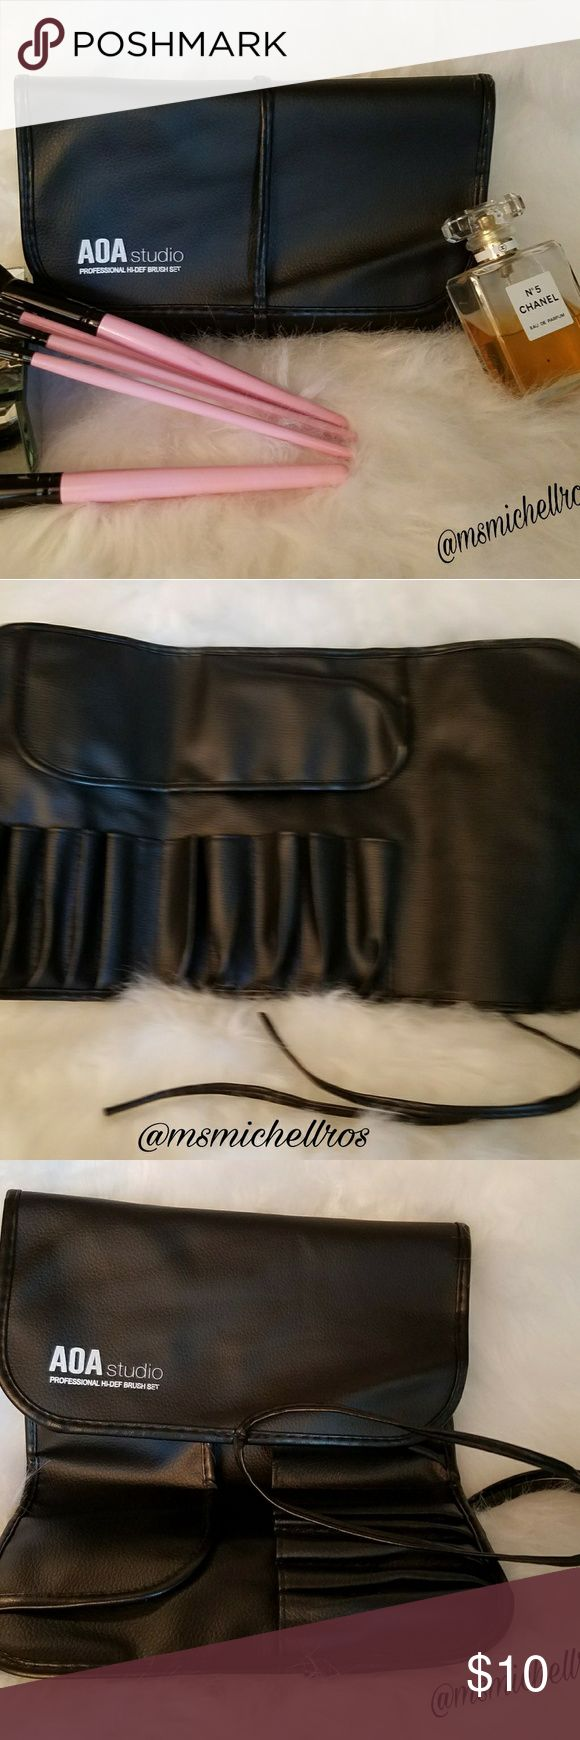 Faux makeup brush carrying case Professional brush case for all your makeup brushes! Prefect size to fit in most bags for the Diva on the go! NWOT AOA studio Makeup Brushes & Tools